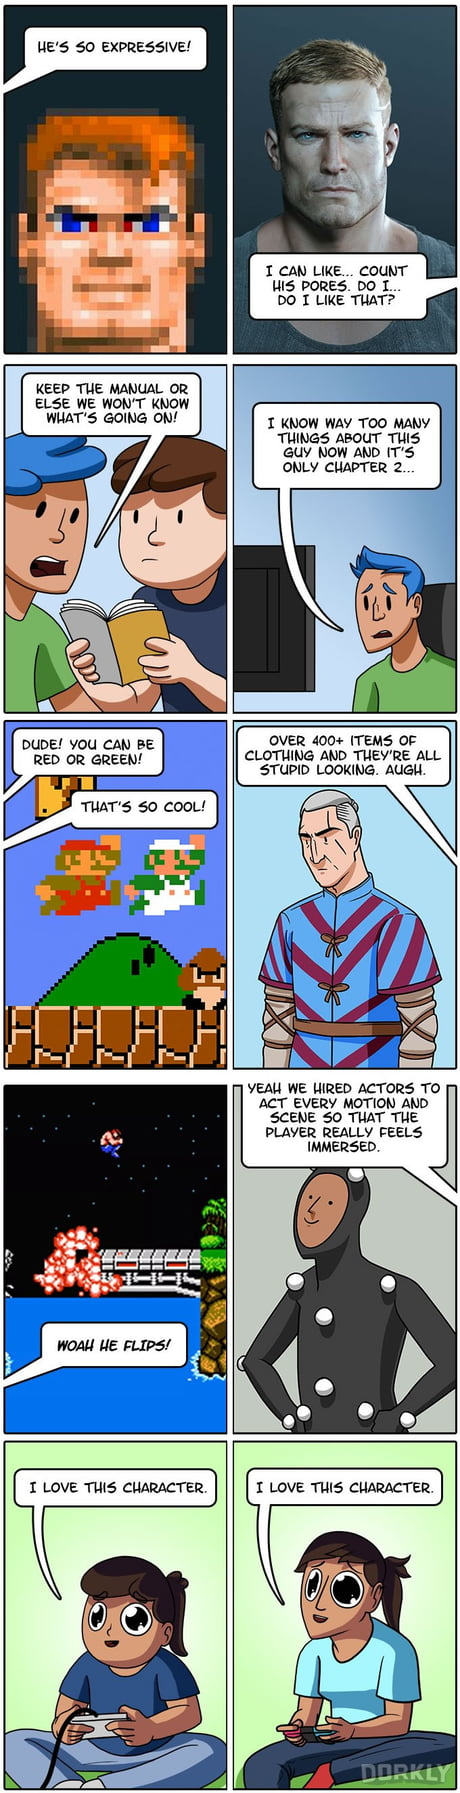 Videogame Protagonists Then VS Now